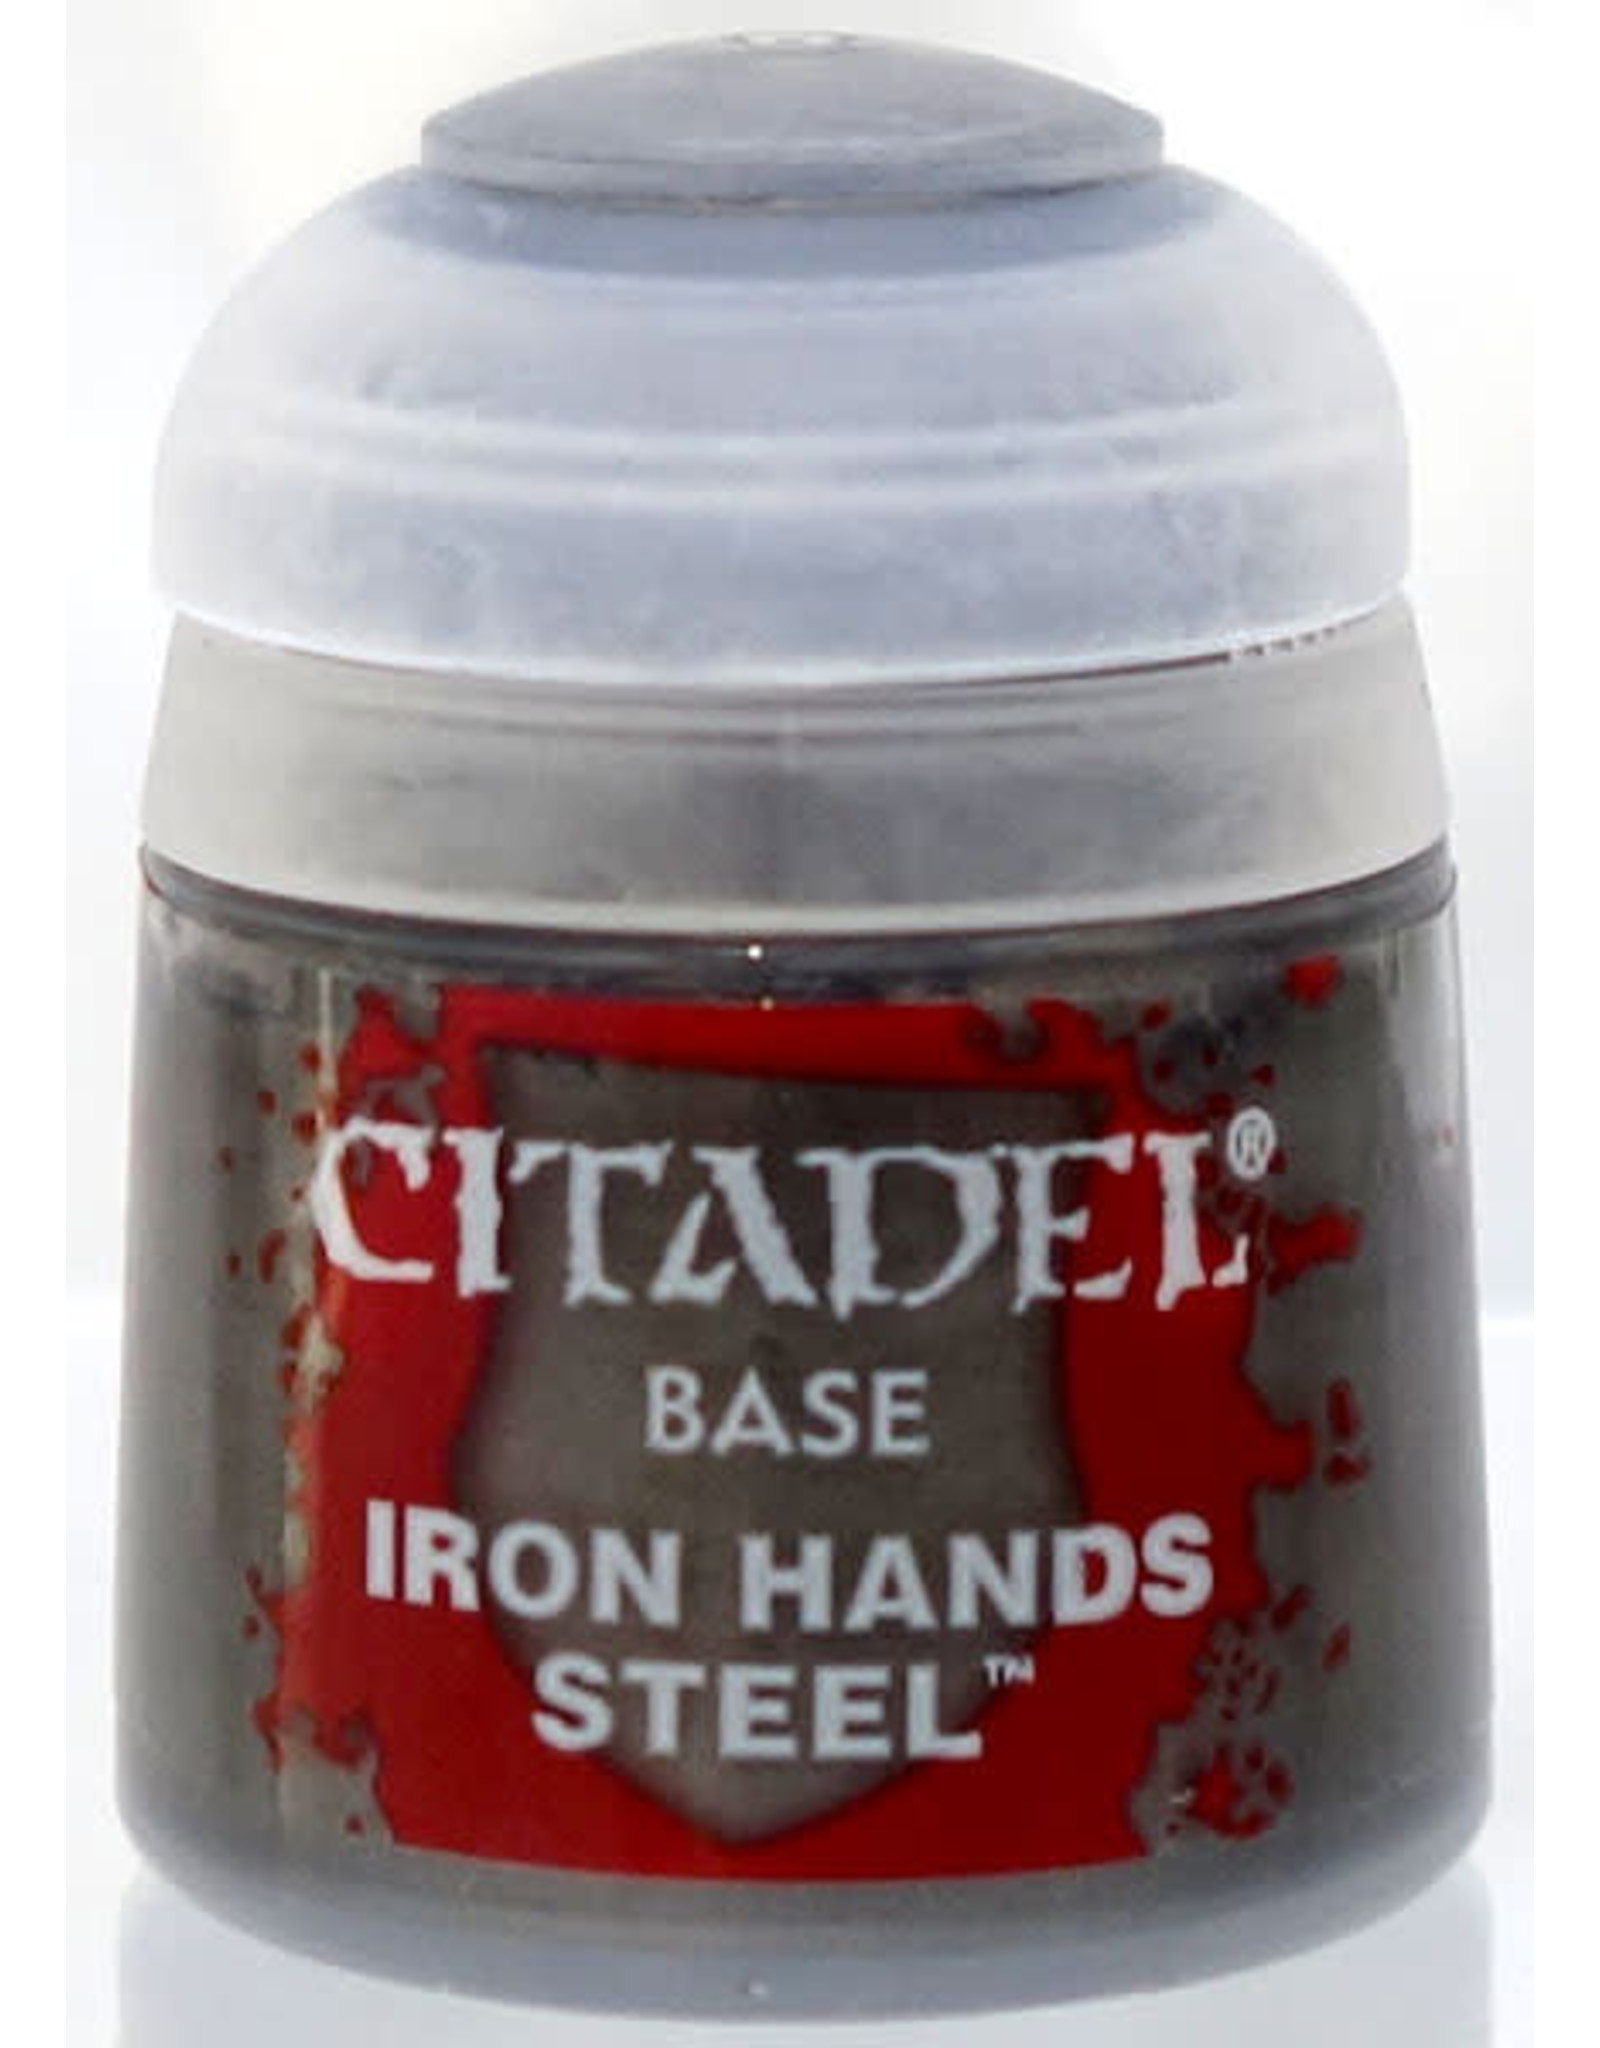 Games Workshop Citadel Paint: Iron Hands Steel 12ml